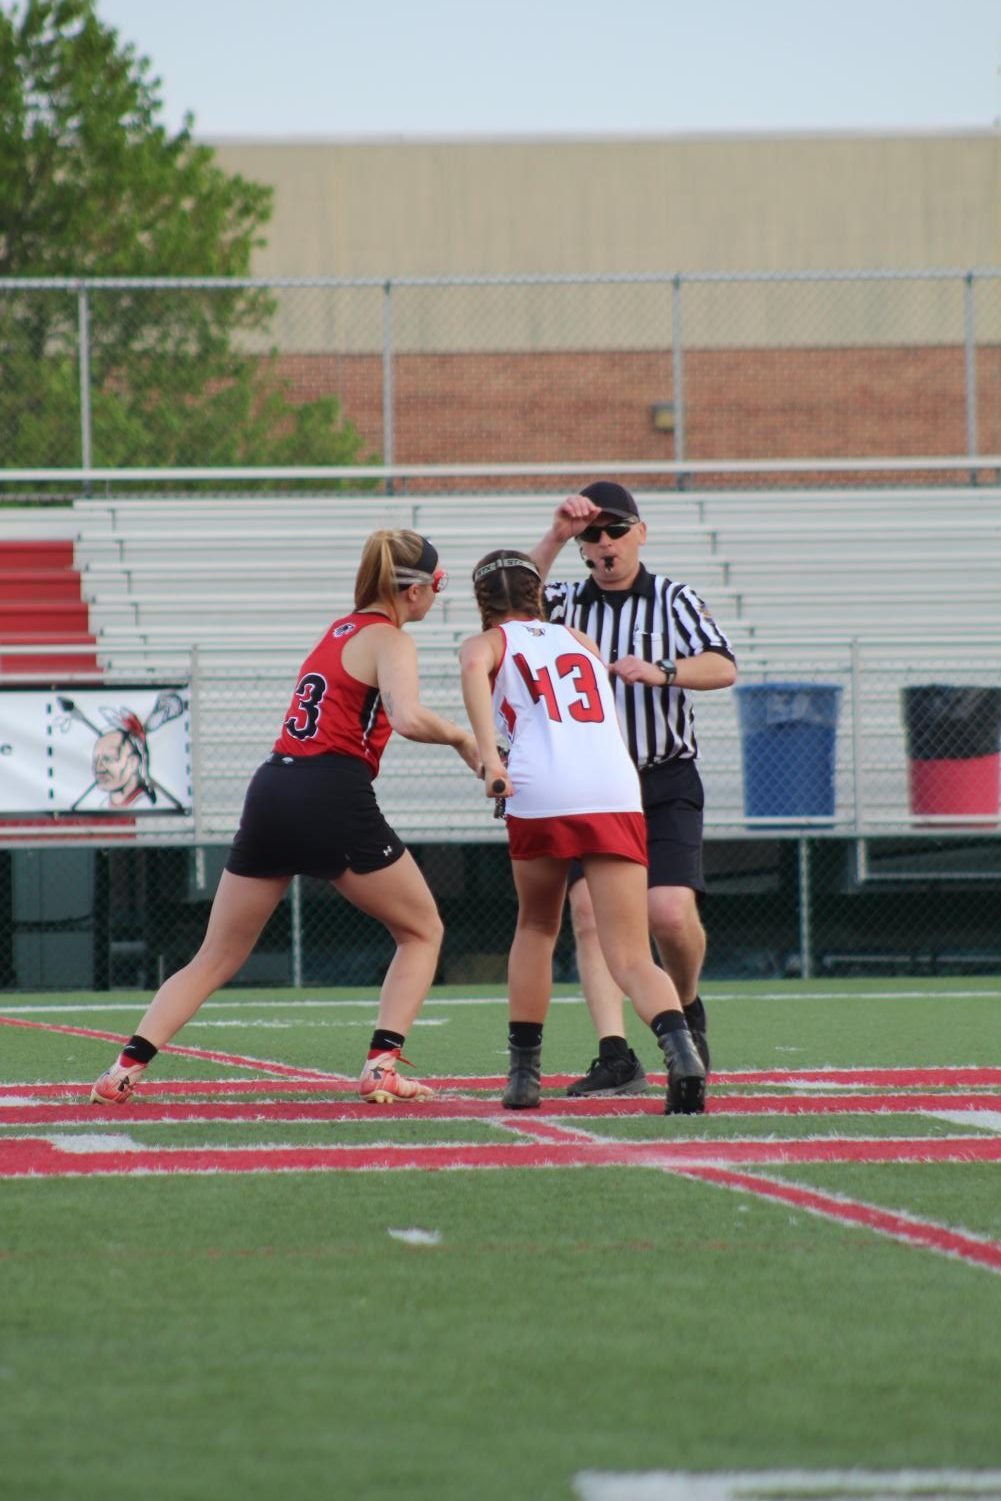 Sophomore+Ariana+Prediger+watches+the+ref+waiting+for+the+whistle+to+take+the+draw.+Prediger+or+another+close+teammate+will+catch+the+ball+and+run+it+down+to+the+field+to+set+up+a+scoring+play.+Photograph+by+Stephanie